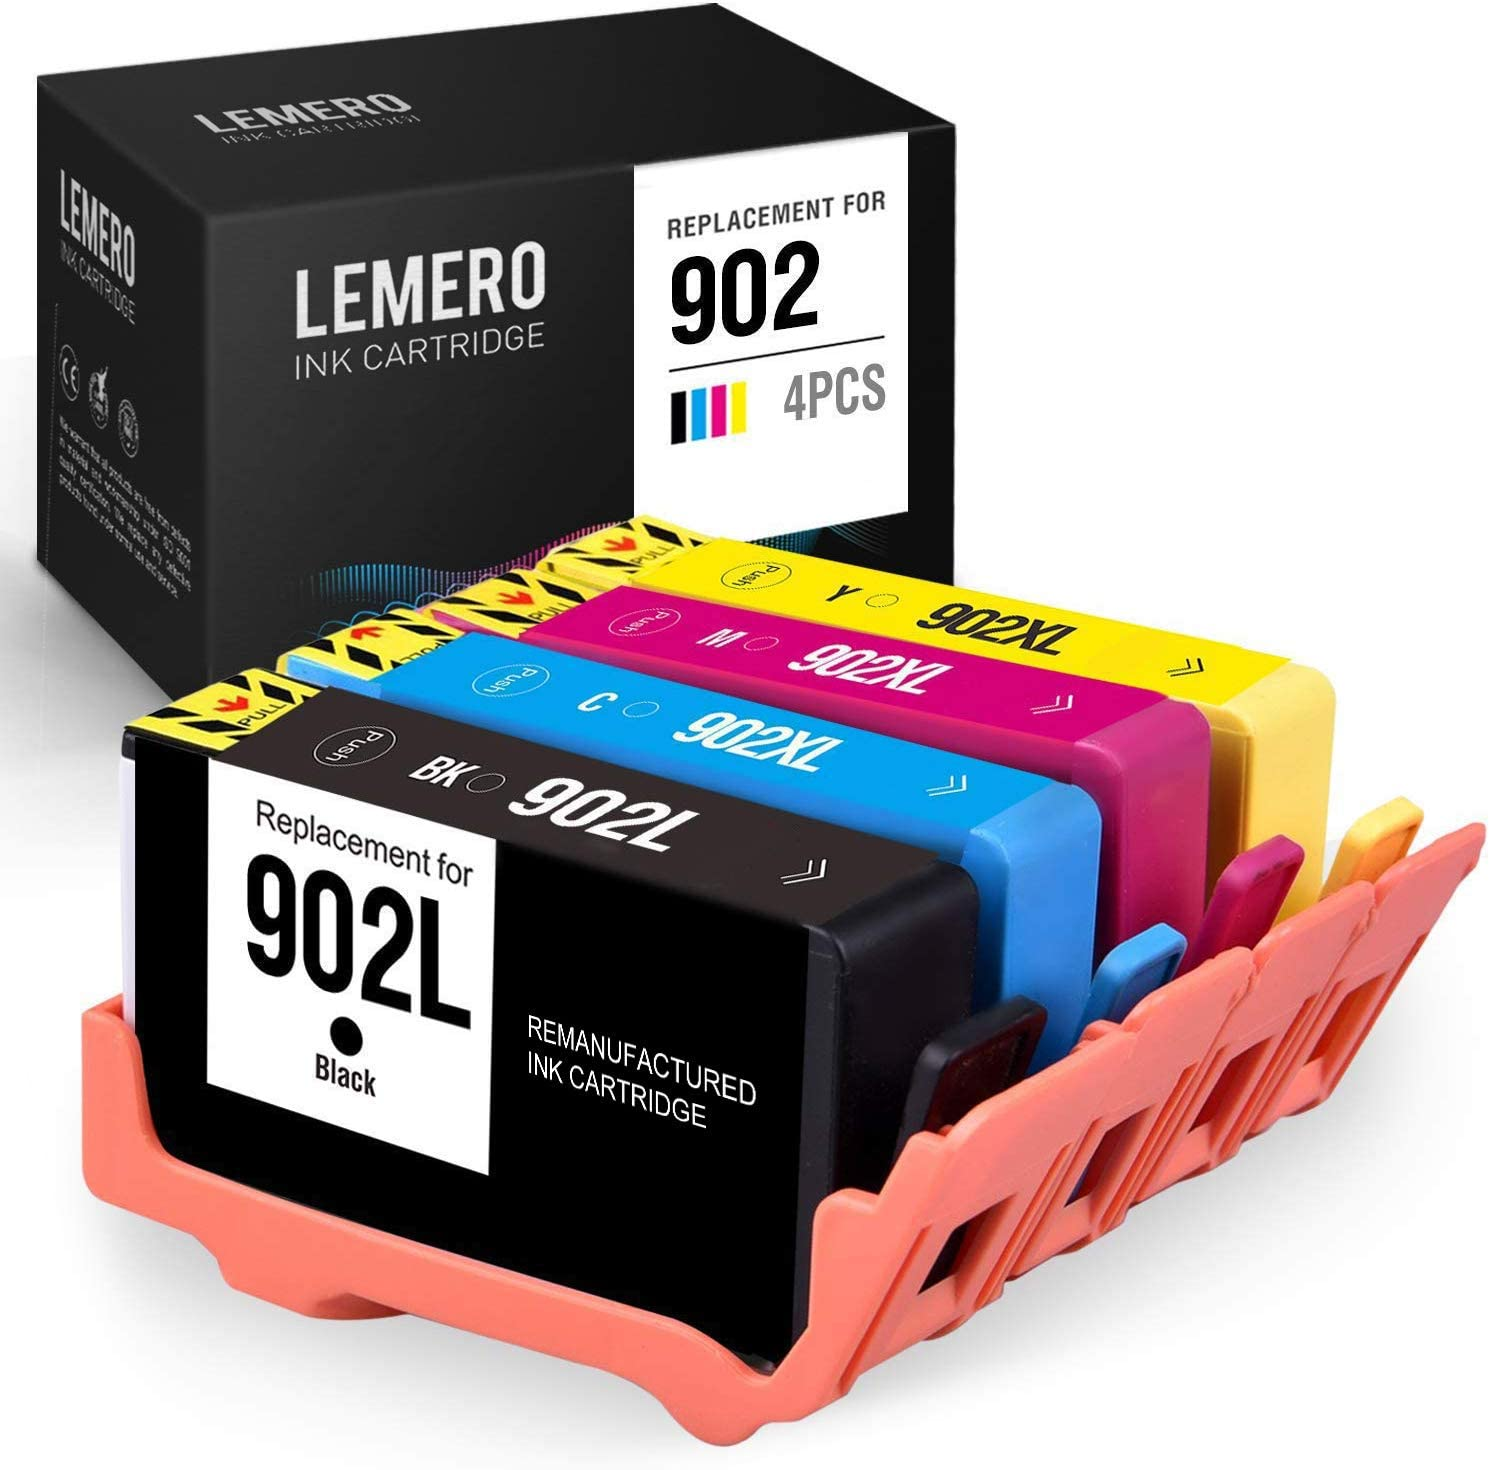 LEMERO Remanufactured Ink Cartridges Replacement for HP 902 902XL 902 XL - for Officejet Pro 6978 6962 6968 6958 6970 6975 6960 6950 6954 (Black Cyan Magenta Yellow, 4 Pack)